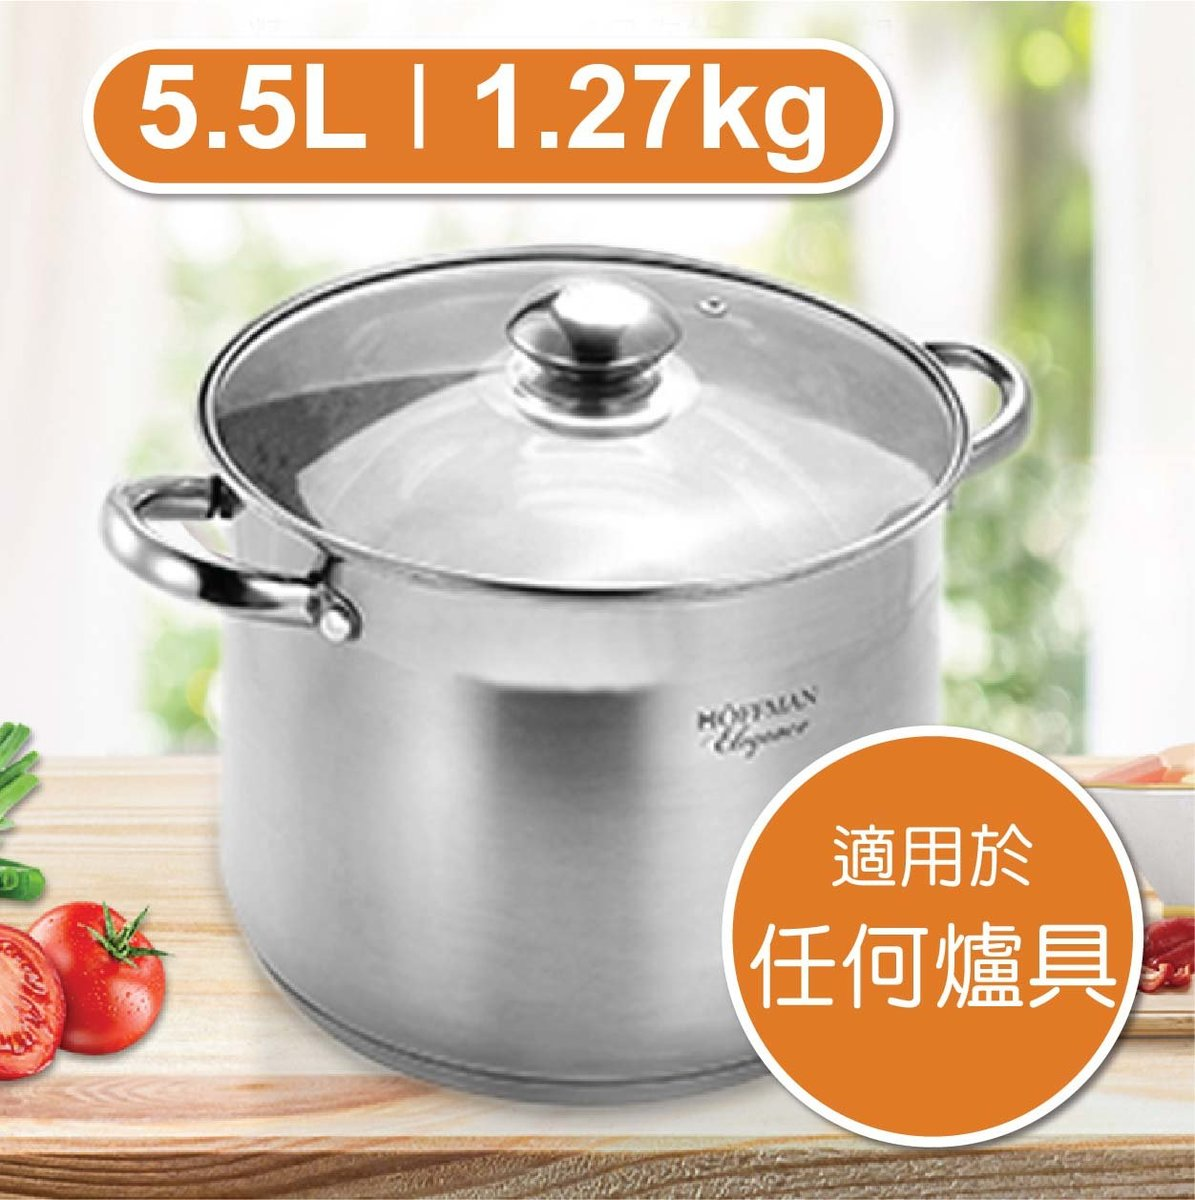 5.5L Stainless Steel Stewpot with Glass Lid (21cm) - silver